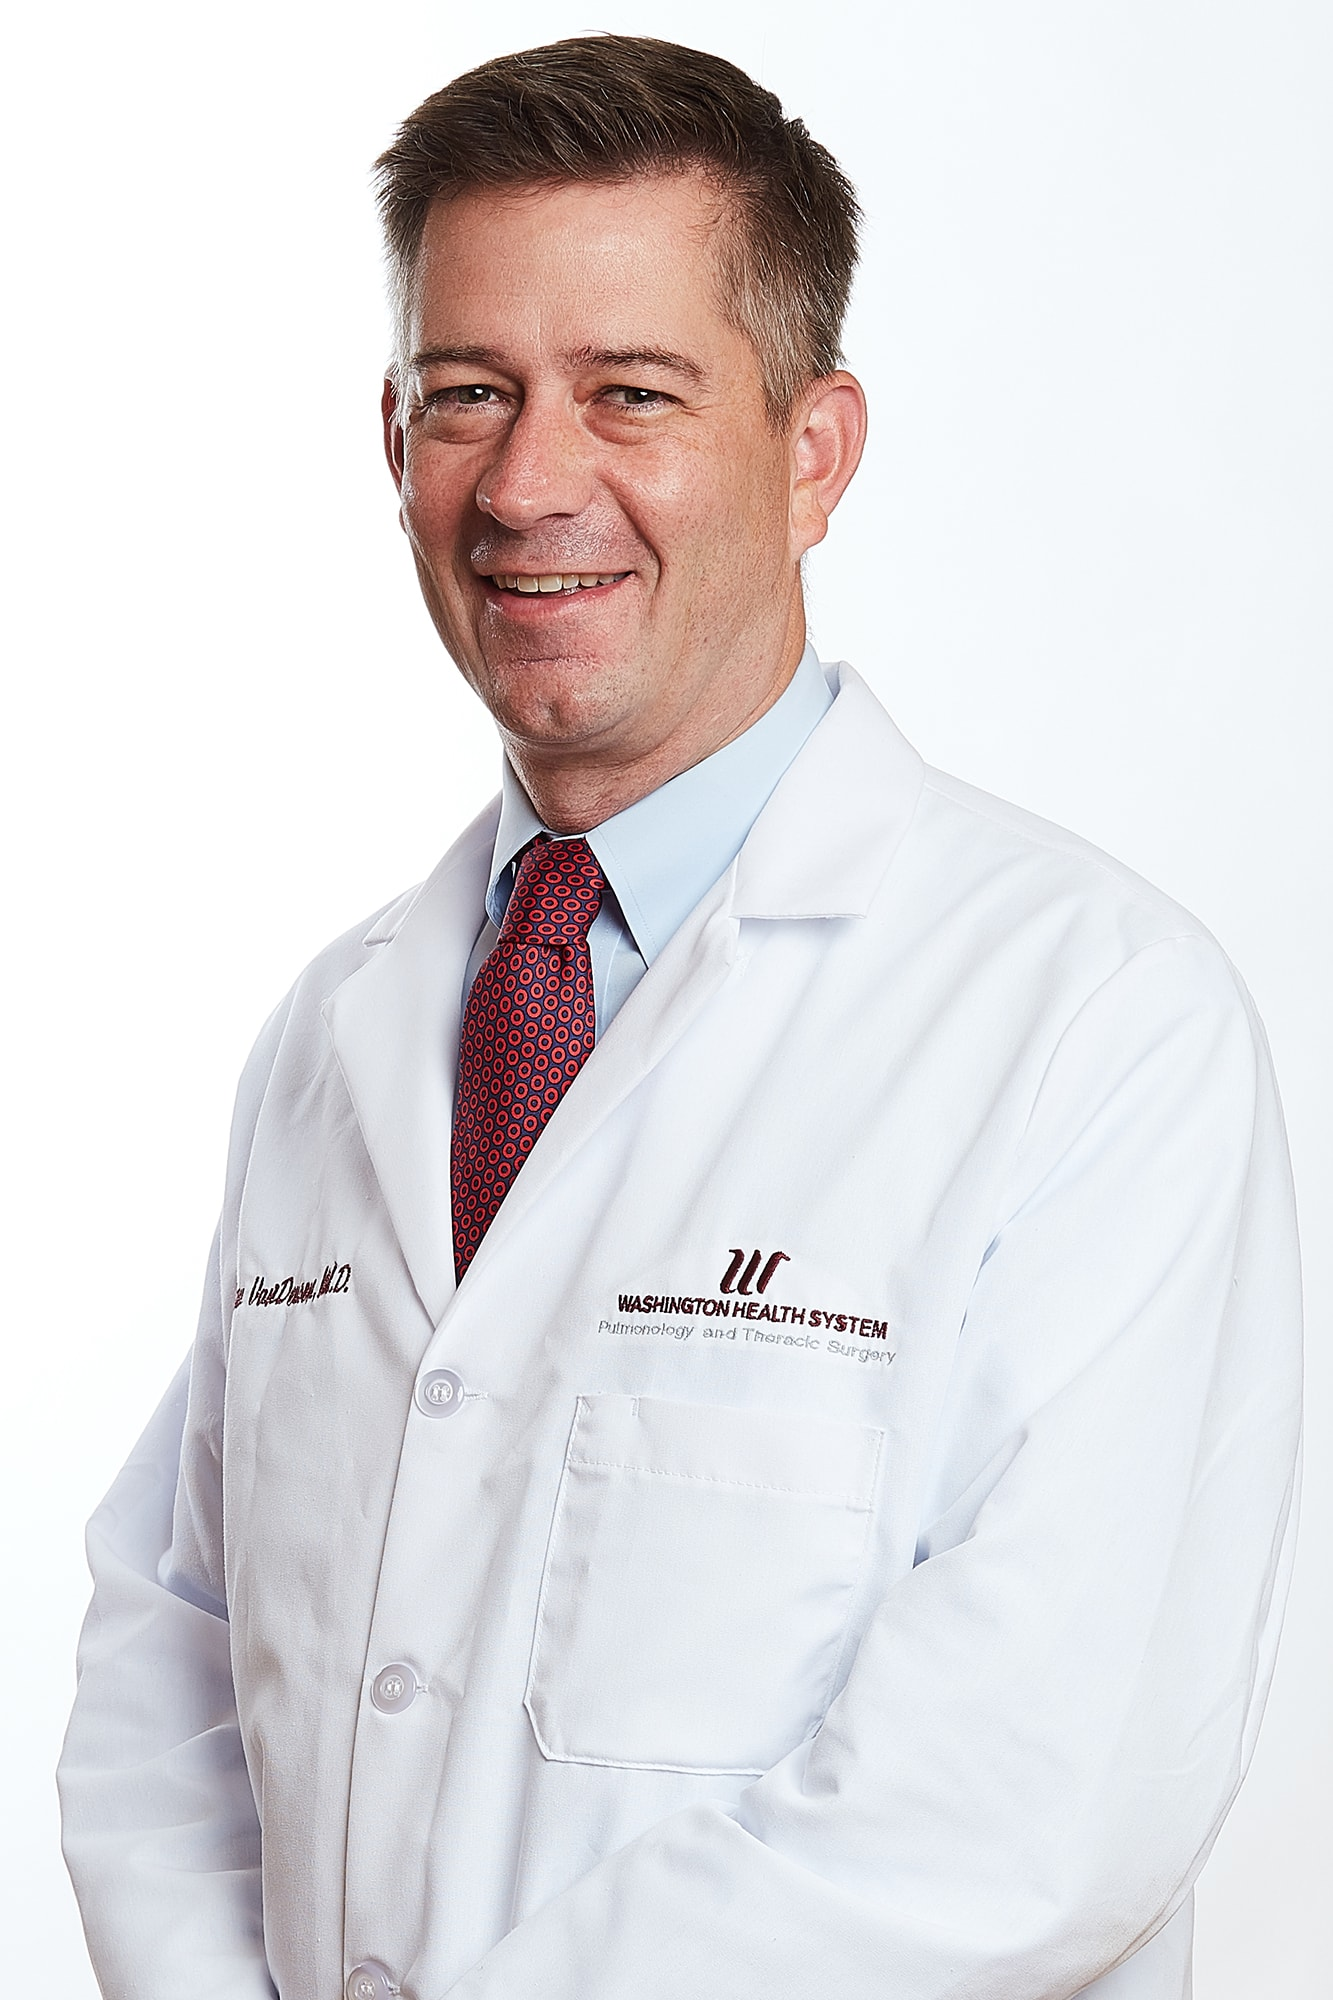 Photo of Mathew A. Van Deusen, M.D.